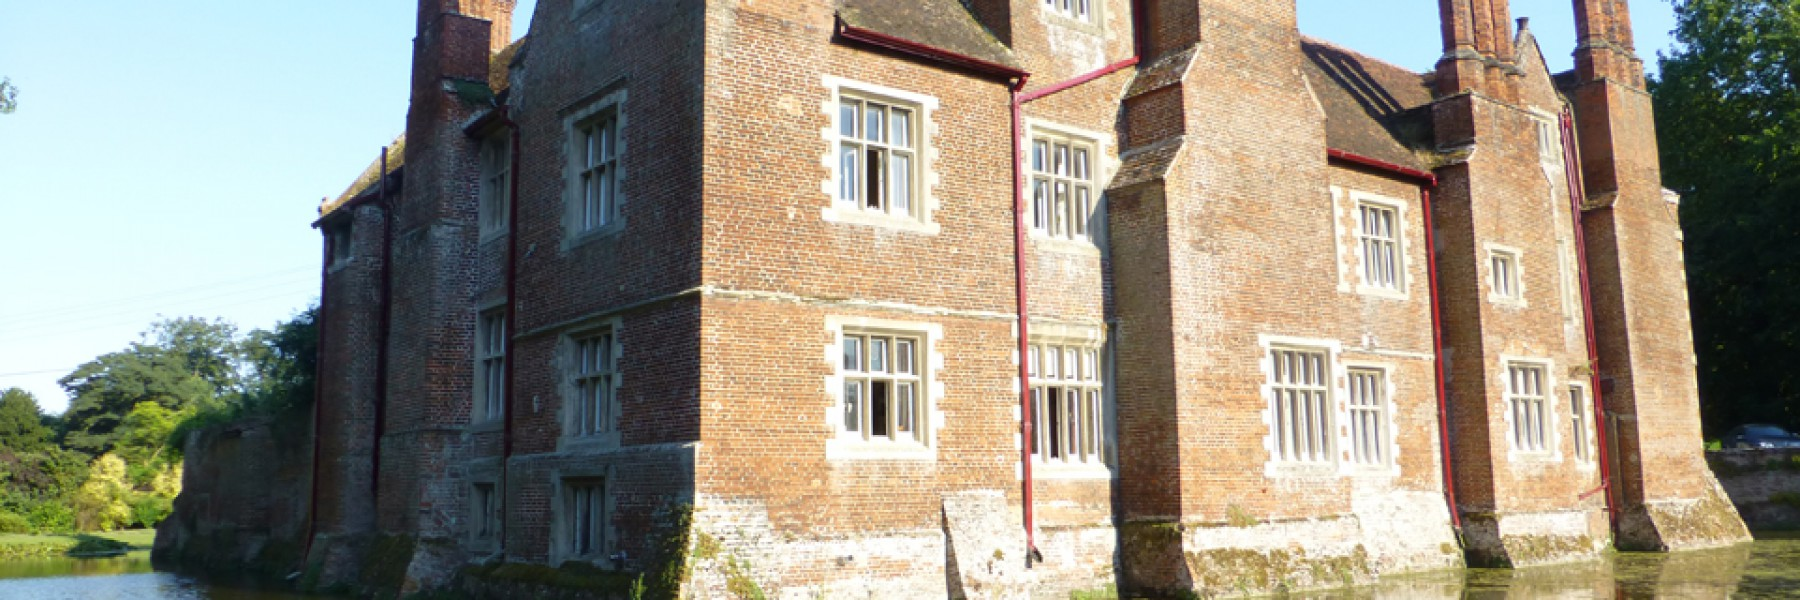 LISTED BUILDINGS SURVEYS